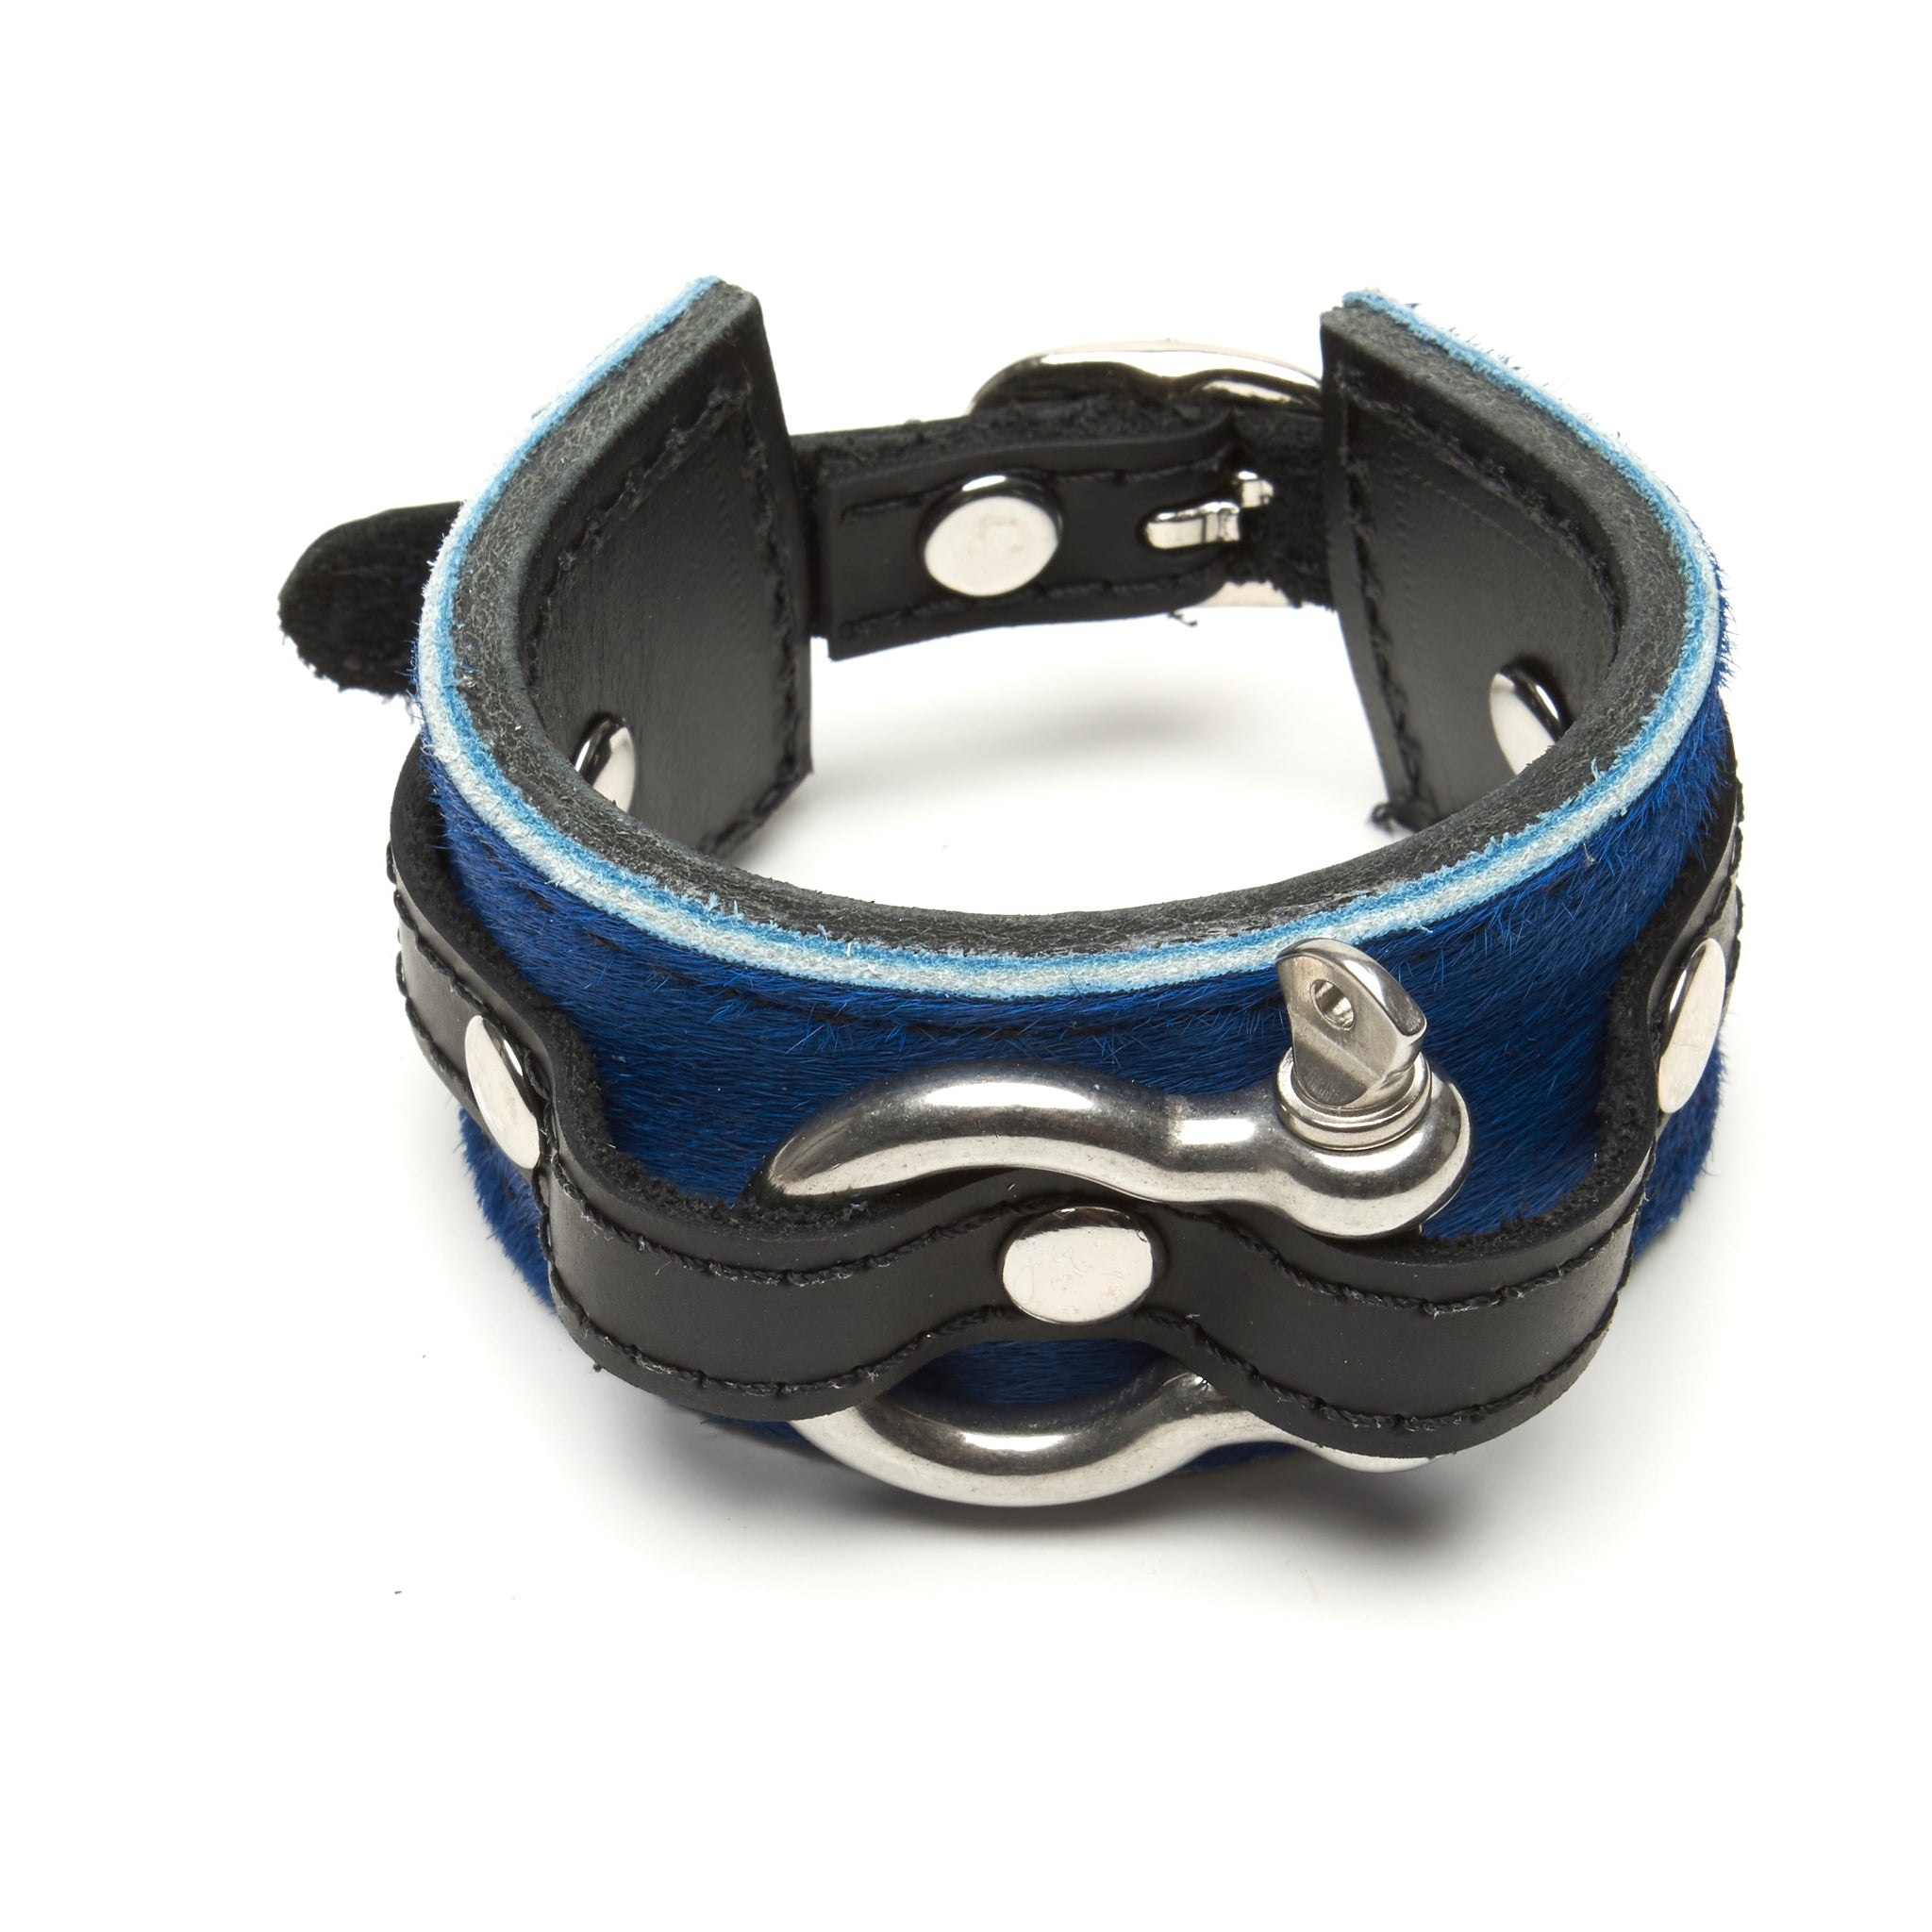 Shackle Latigo cuff Hair On Cowhide Cobalt Blue by NYET Jewelry.